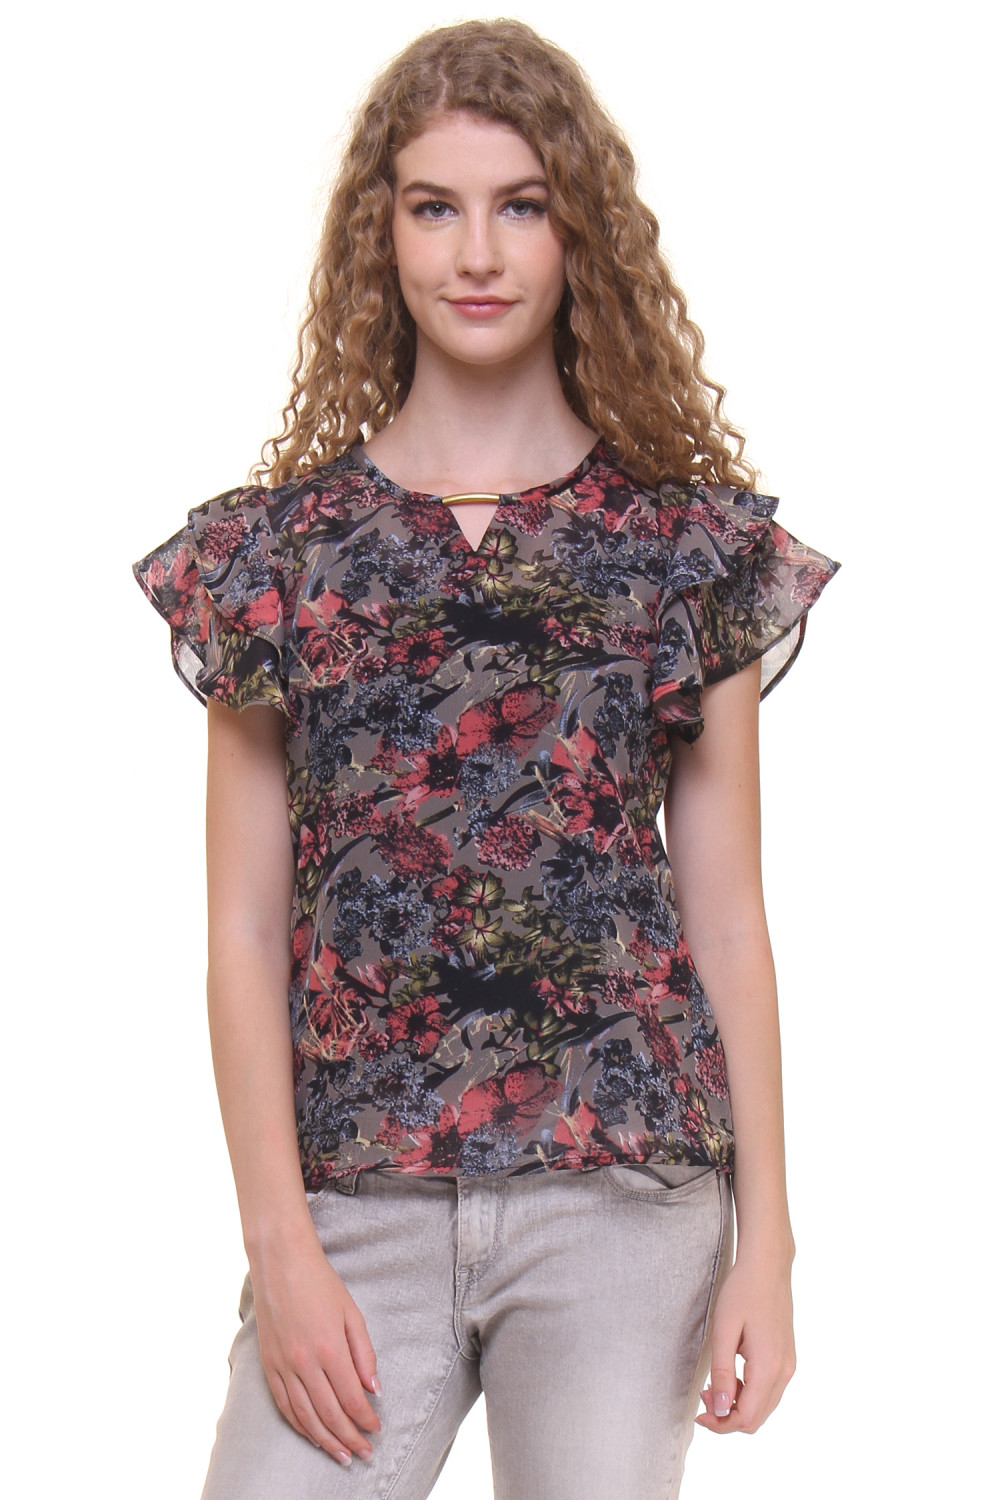 Zoys Casual Short Sleeve Printed Women's Multicolor Top